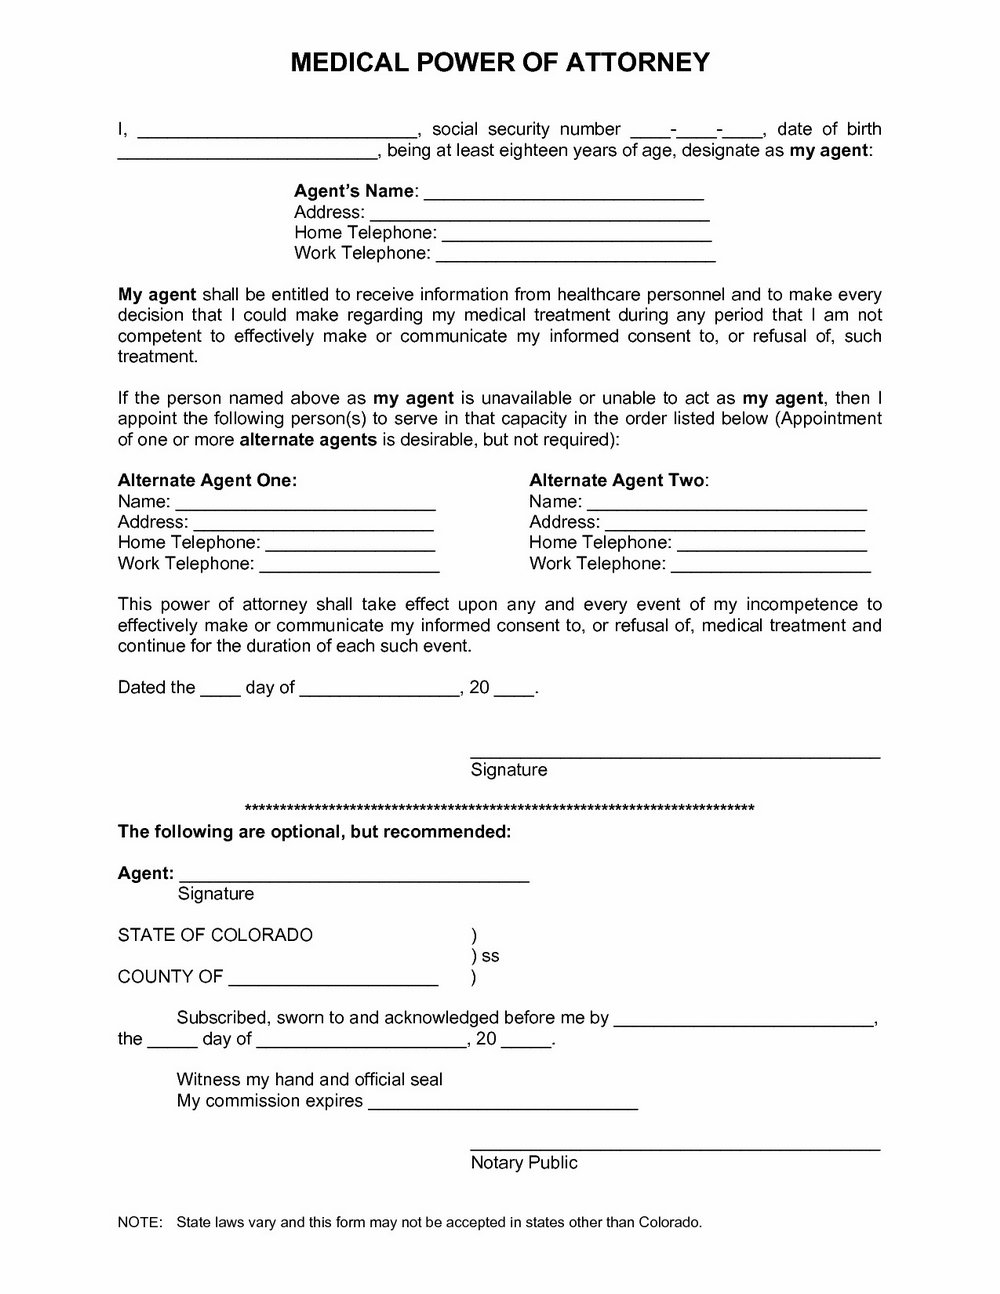 Medical Power Of Attorney Form Colorado Free